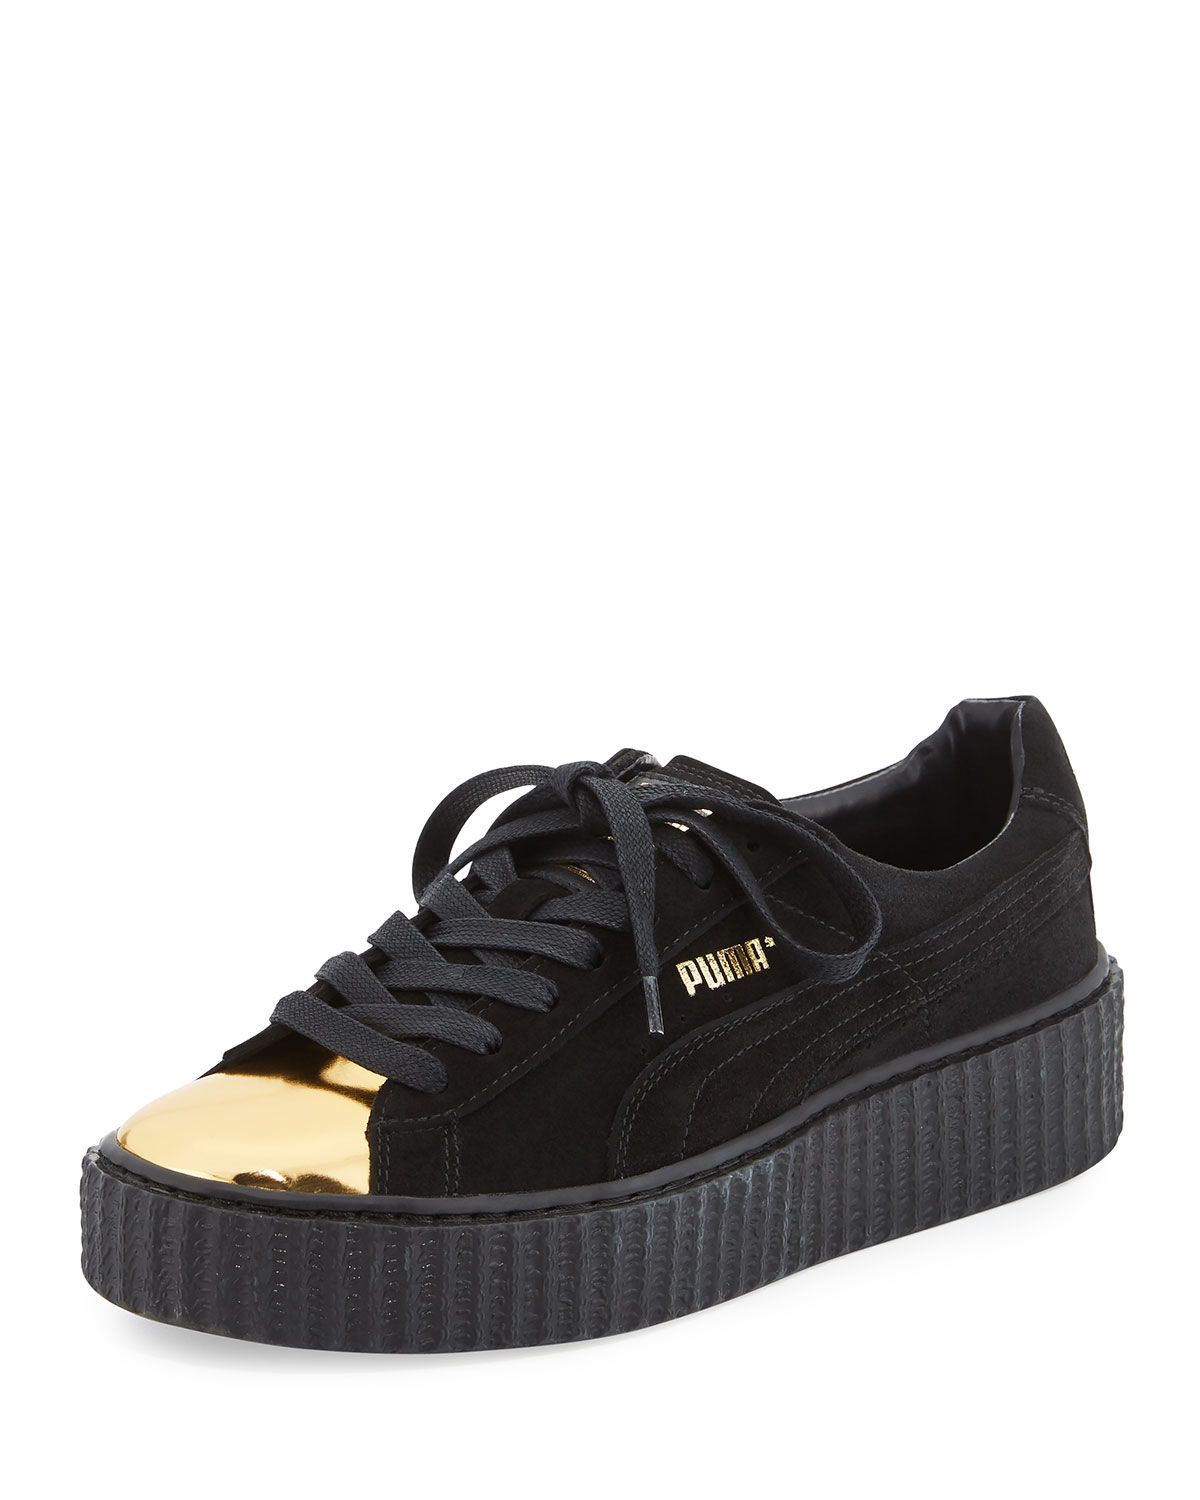 496b29489f5a Puma suede creeper low-top. 1.3 platform heel. Patent leather cap toe. Logo  patch on tongue. Embossed logo at side and backstay. Lace-up front.